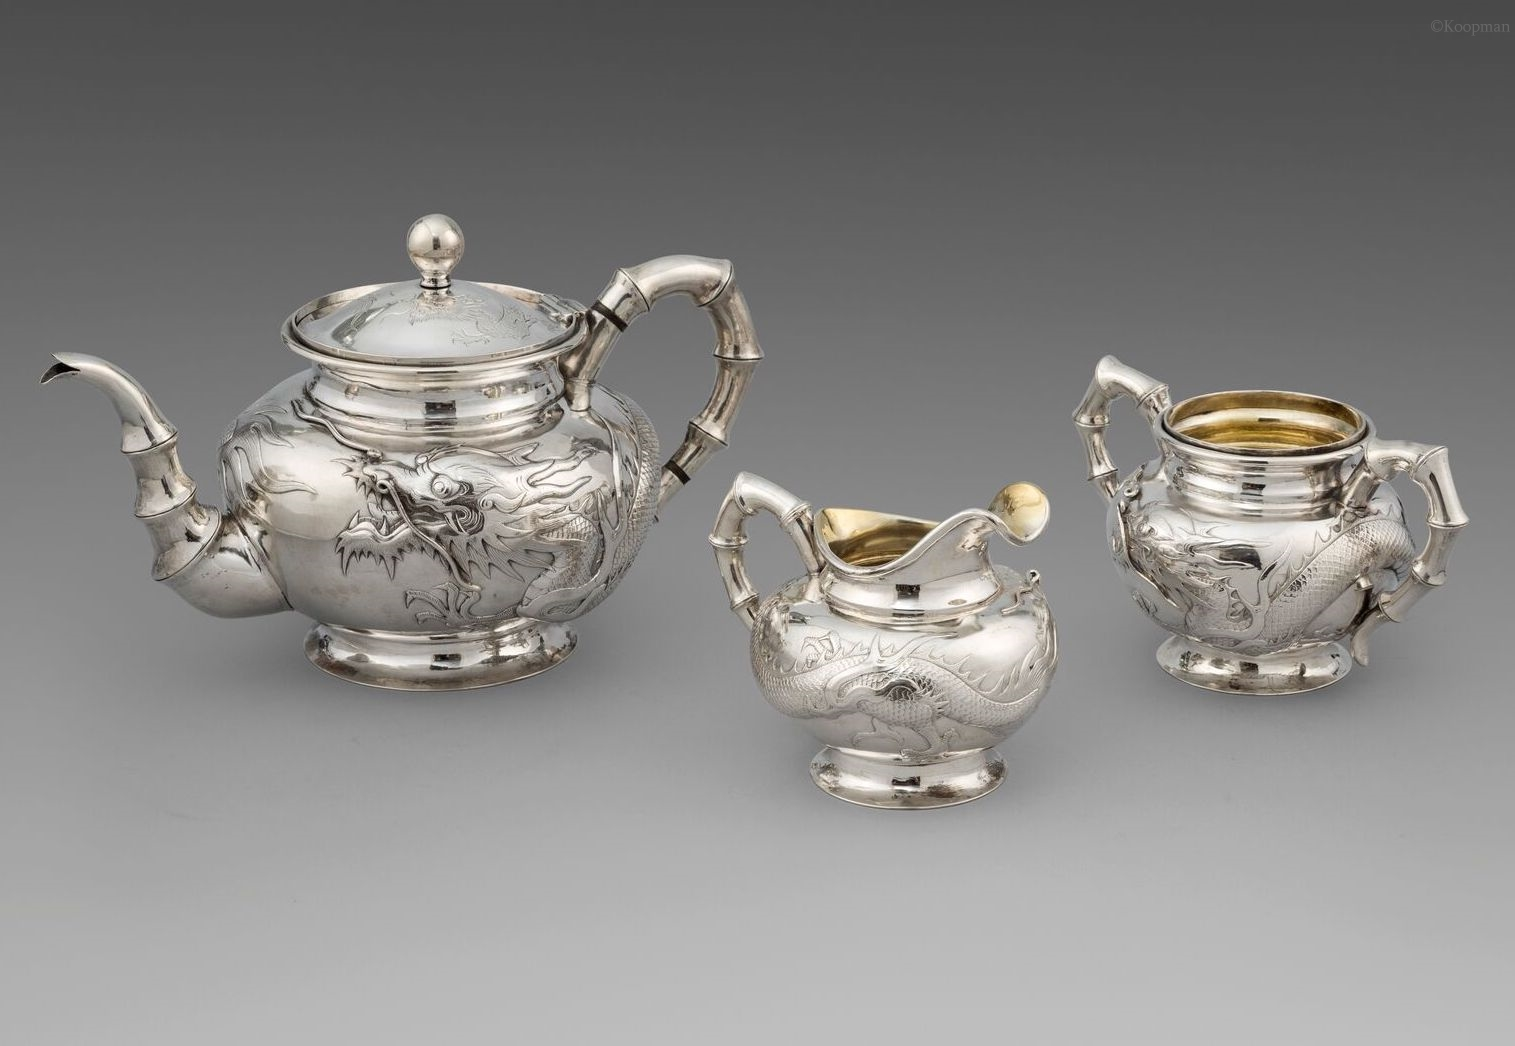 A 19th Century Three-Piece Tea Set